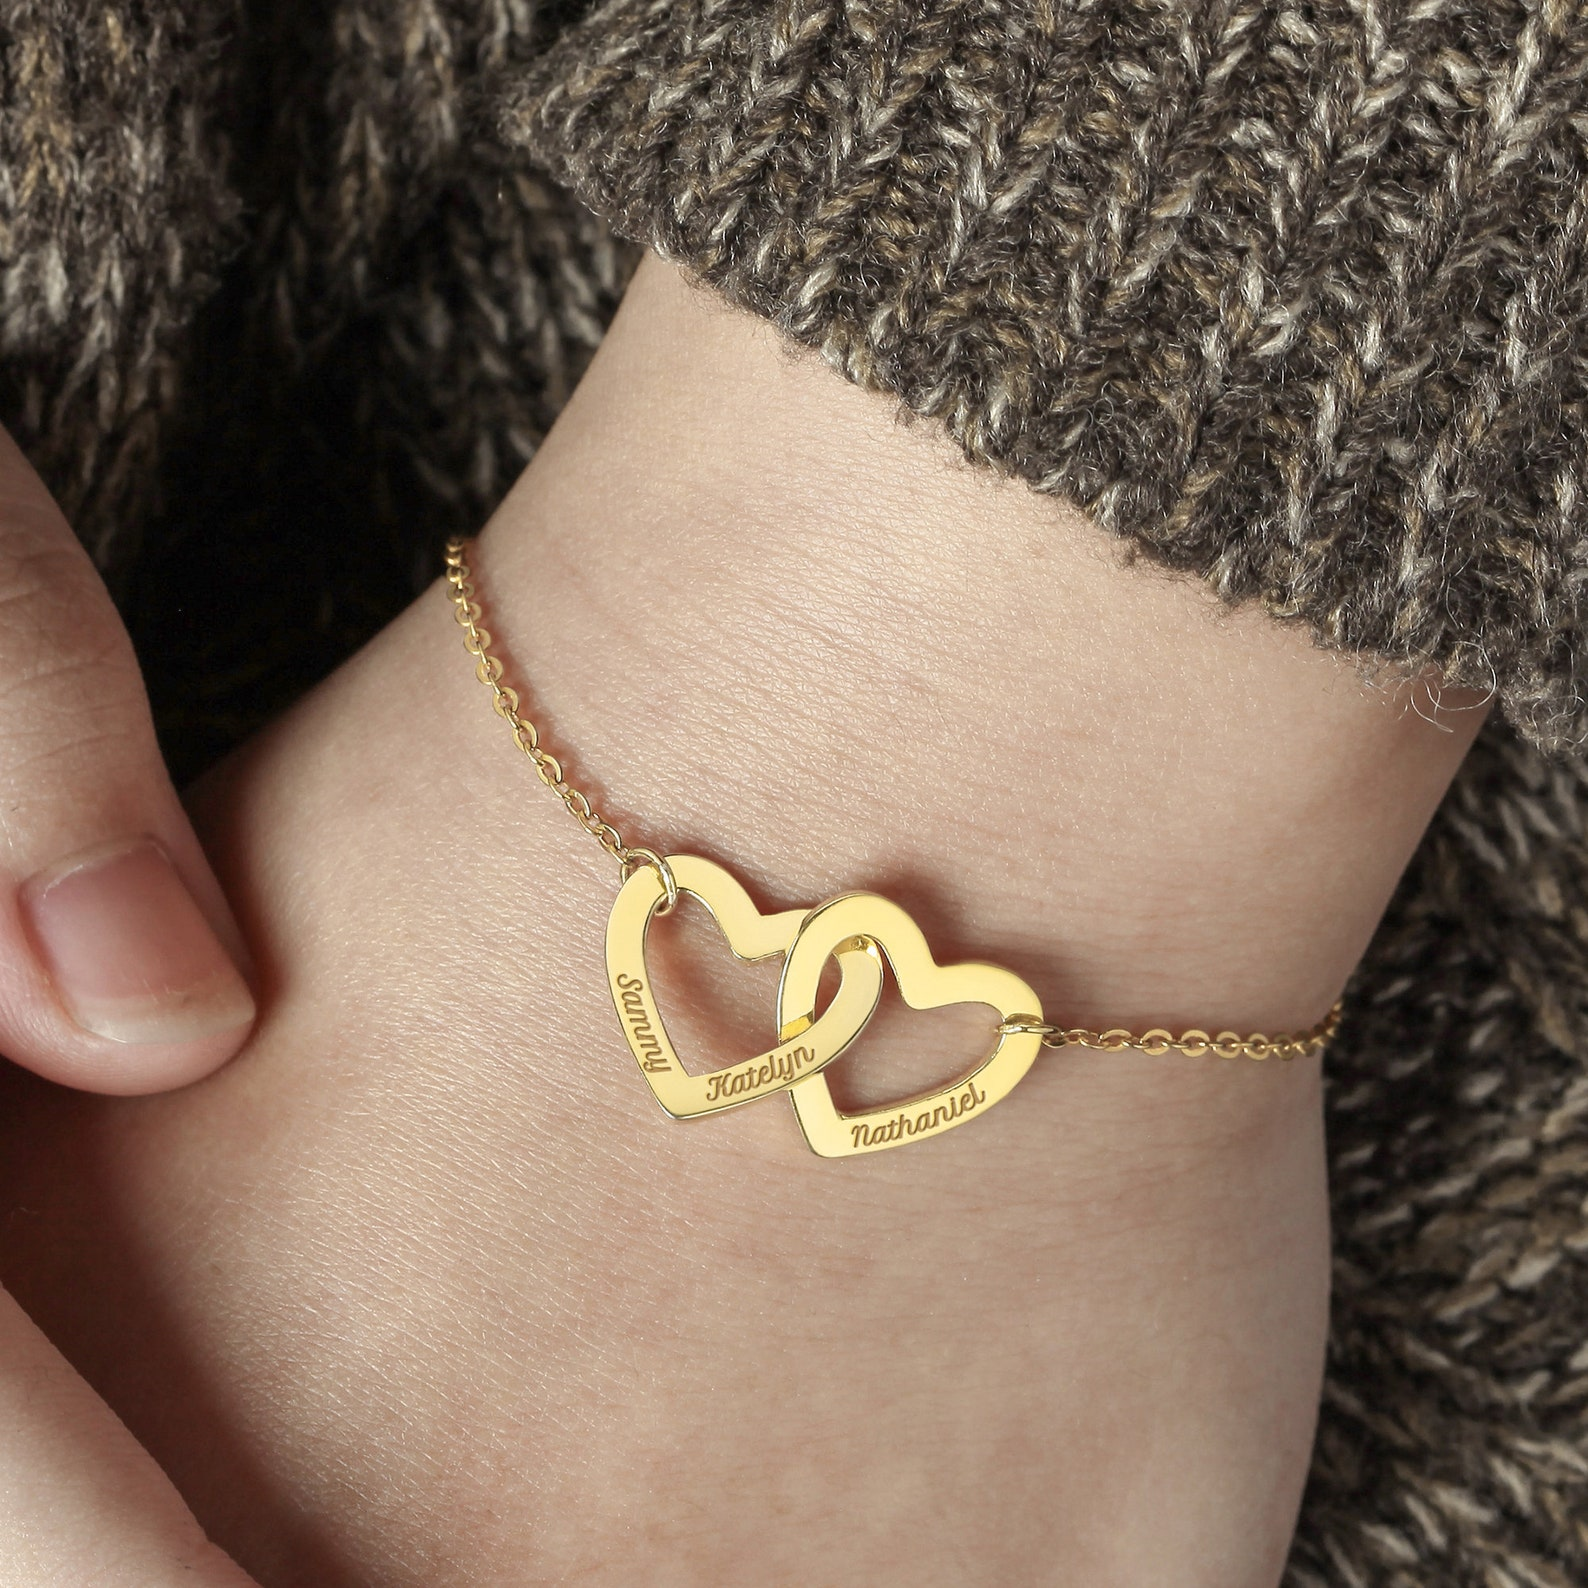 Gifts for Mom: Personalized Bracelet